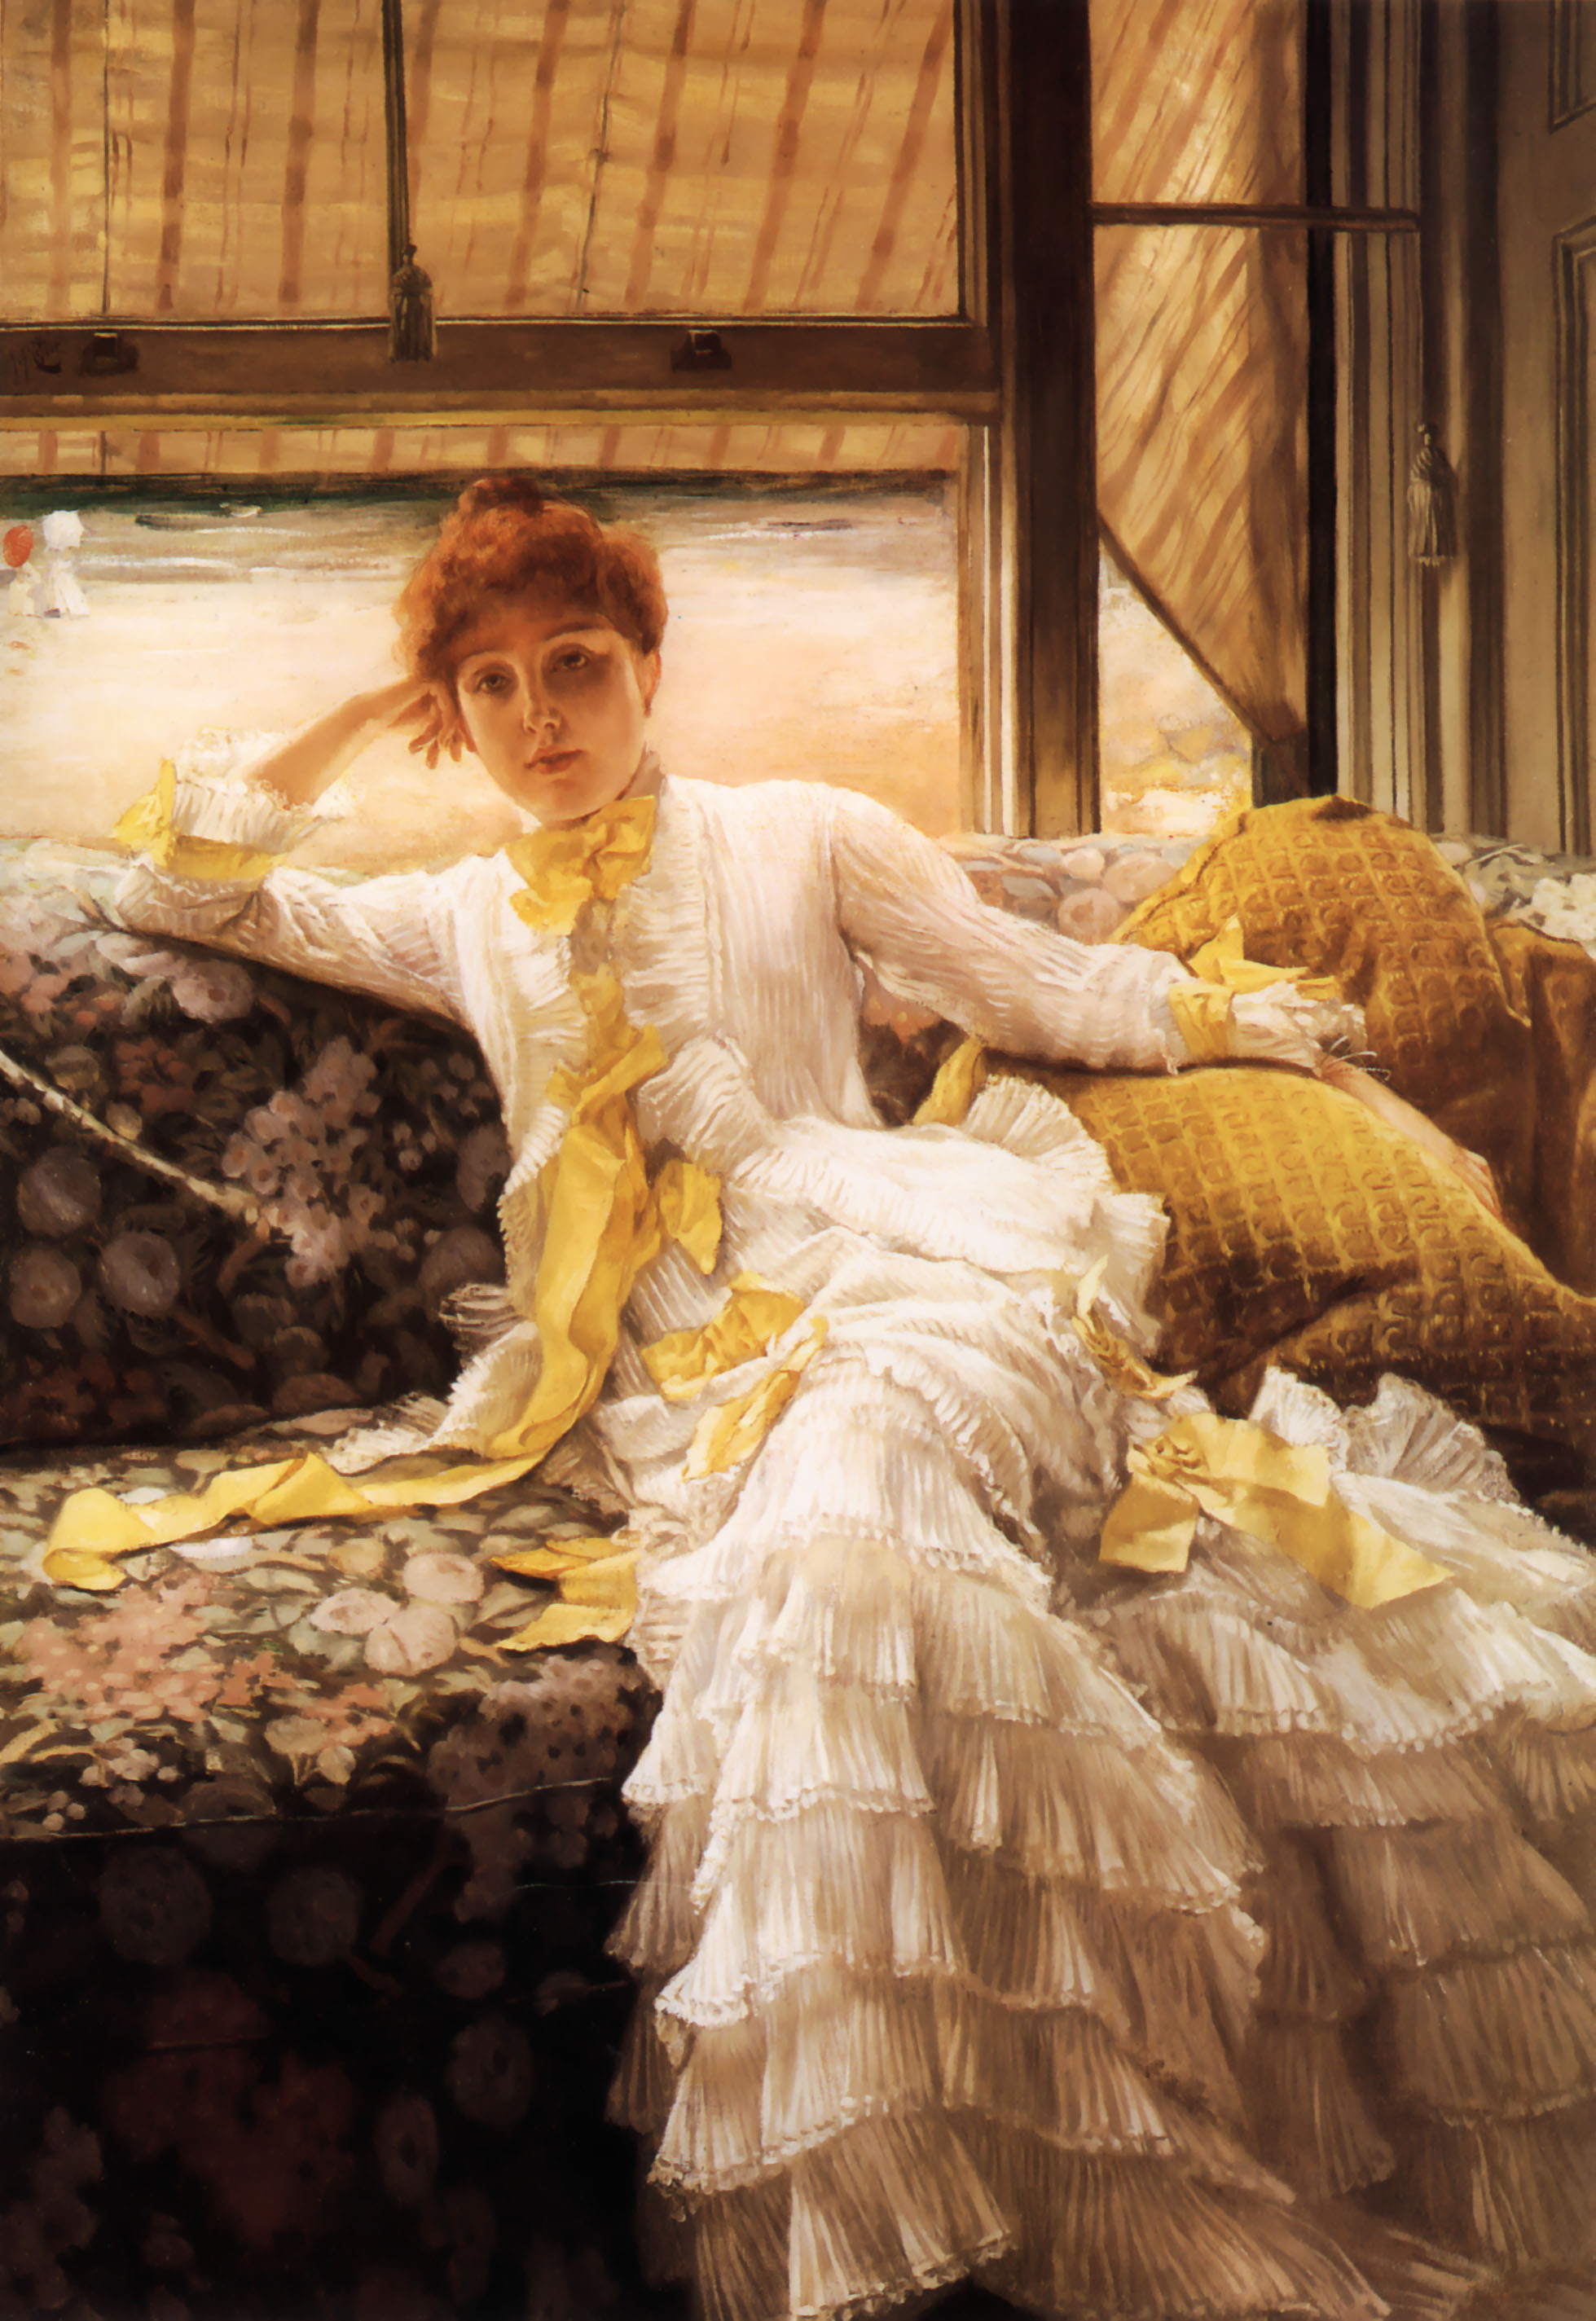 http://upload.wikimedia.org/wikipedia/commons/8/80/James_Tissot_-_Seaside.jpg